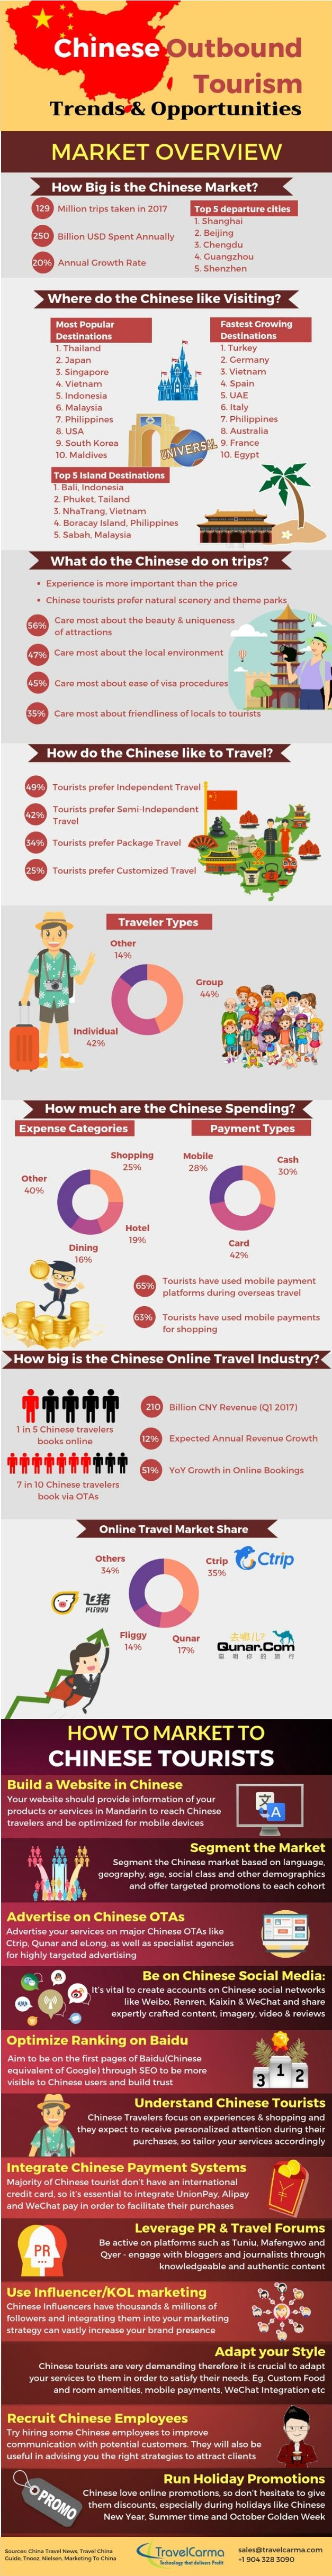 Infographic - China Outbound Tourism Market Trends